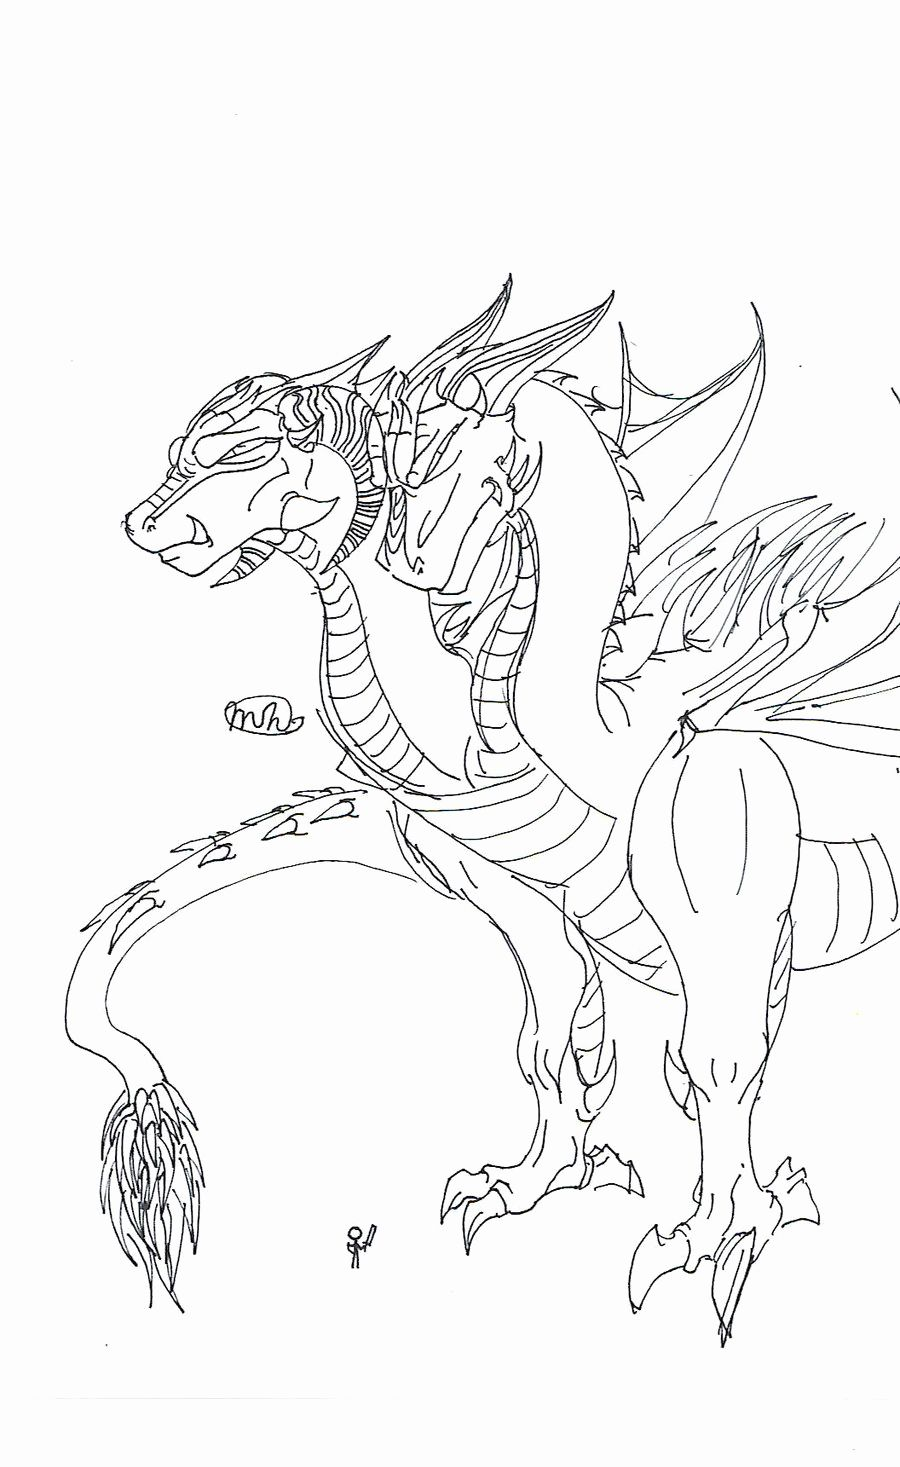 Coloring Pages For Kids Two Headed Dragon Dragon Coloring Page Coloring Pages For Kids Dinosaur Coloring Pages